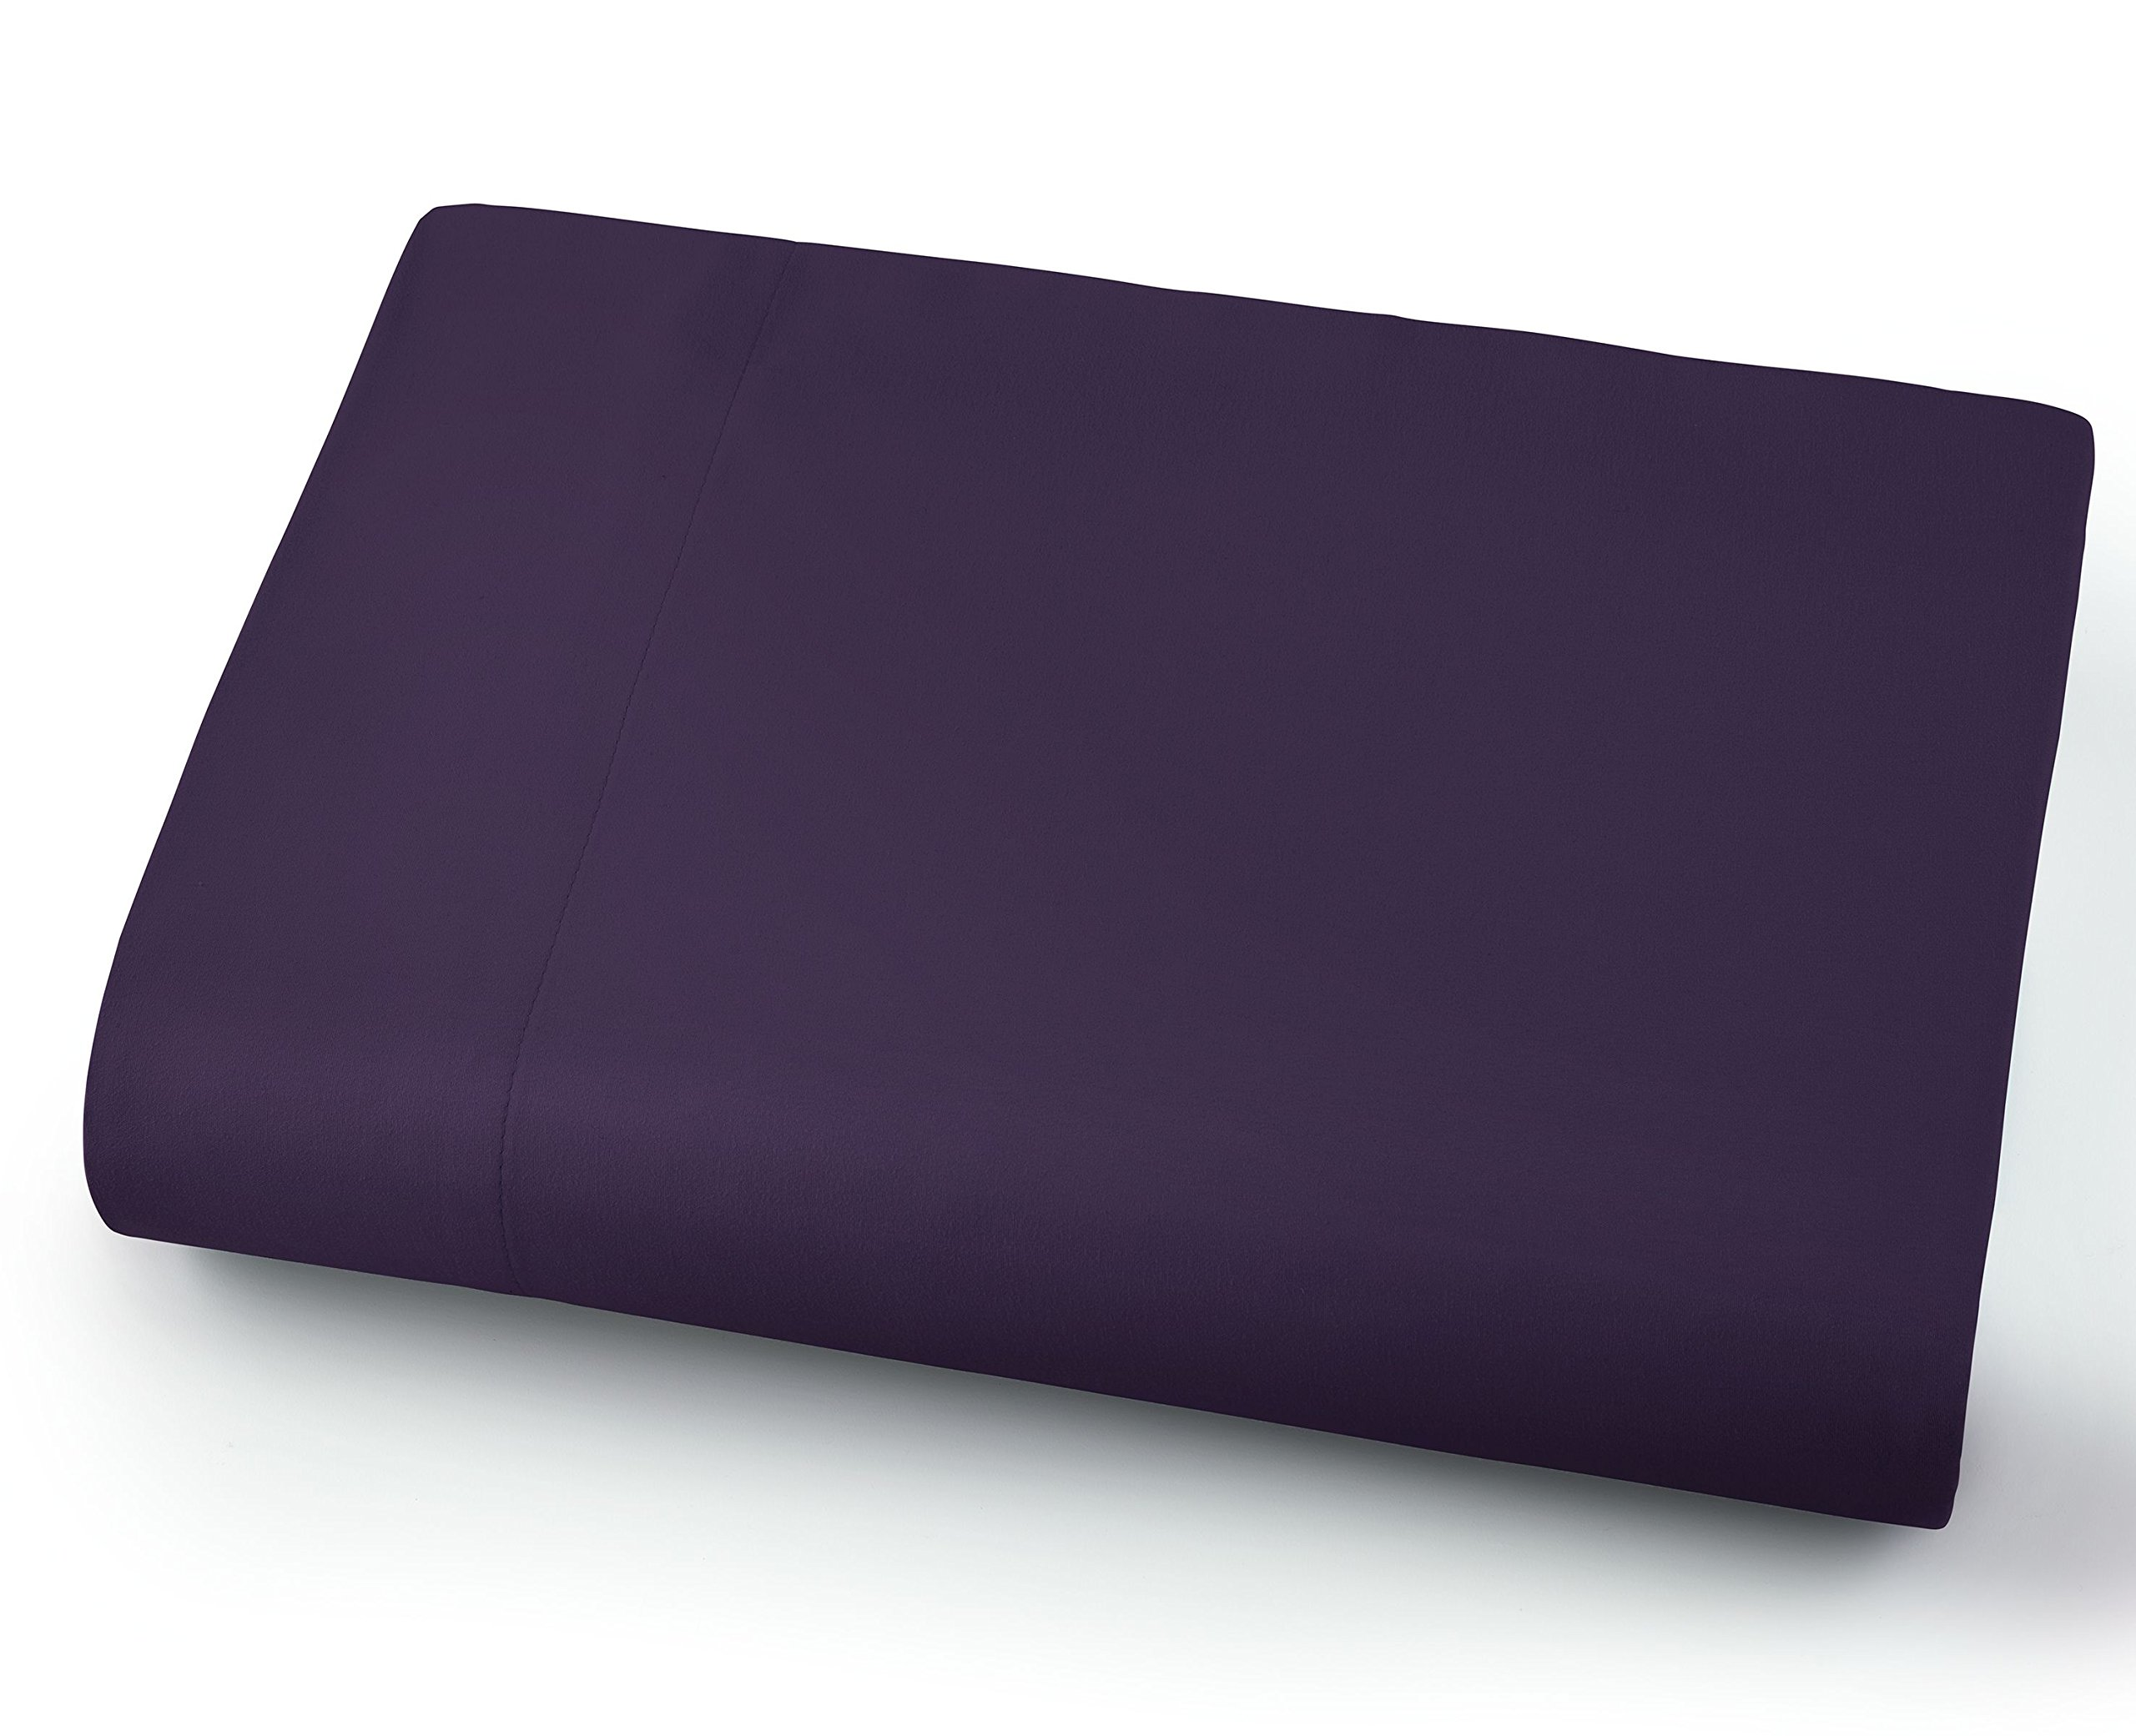 Southshore Fine Linens - Oversized Flat Sheets Extra Large - 132 Inches x 110 Inches (Purple)